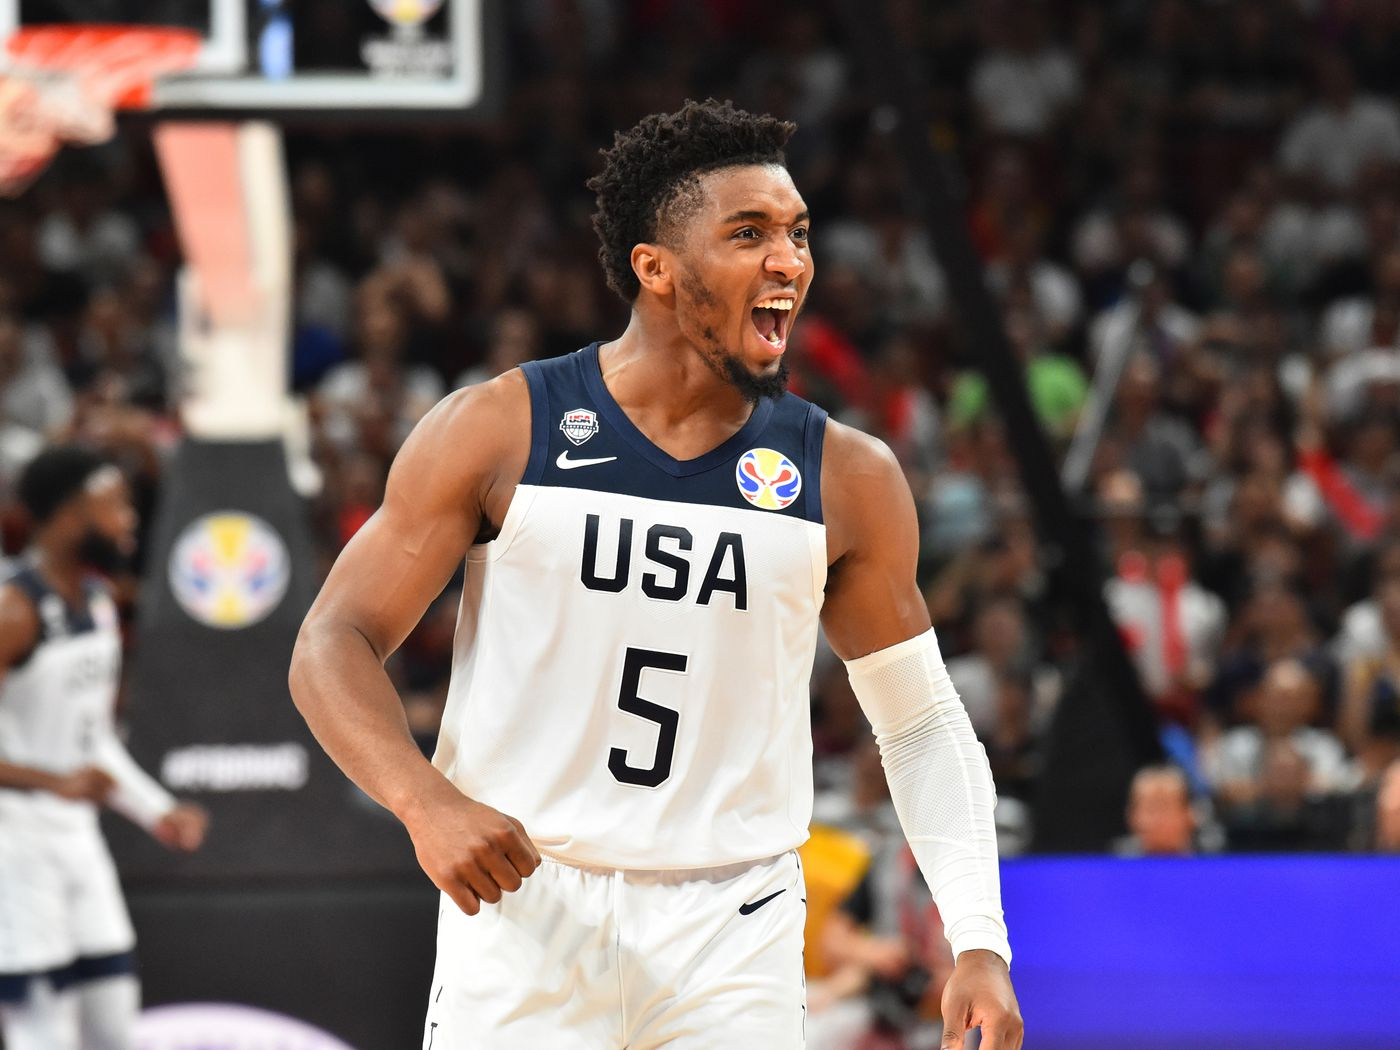 Donovan Mitchell and Team USA battle Brazil in final match